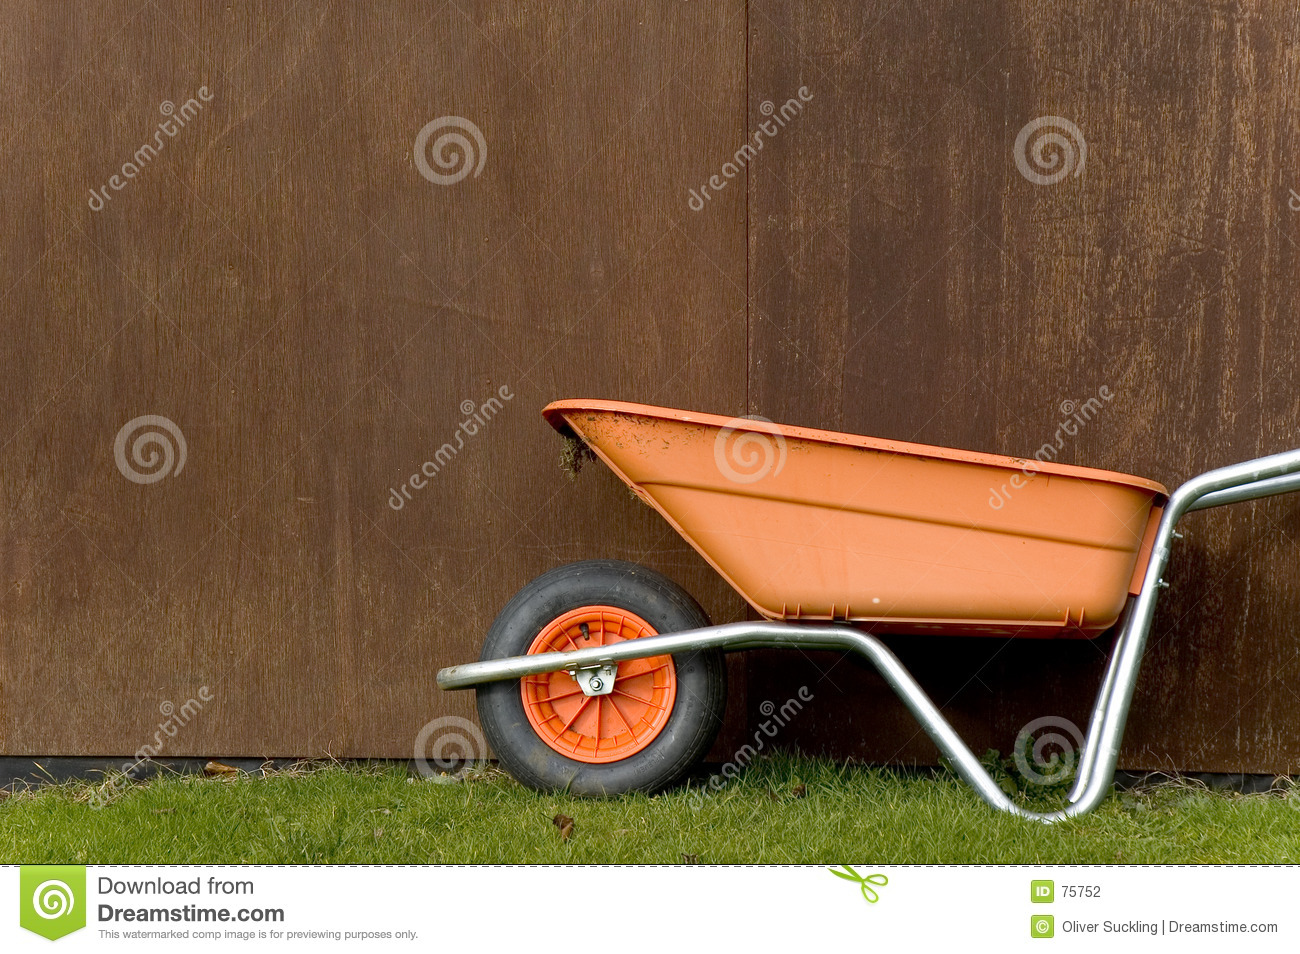 Wheelbarrow4